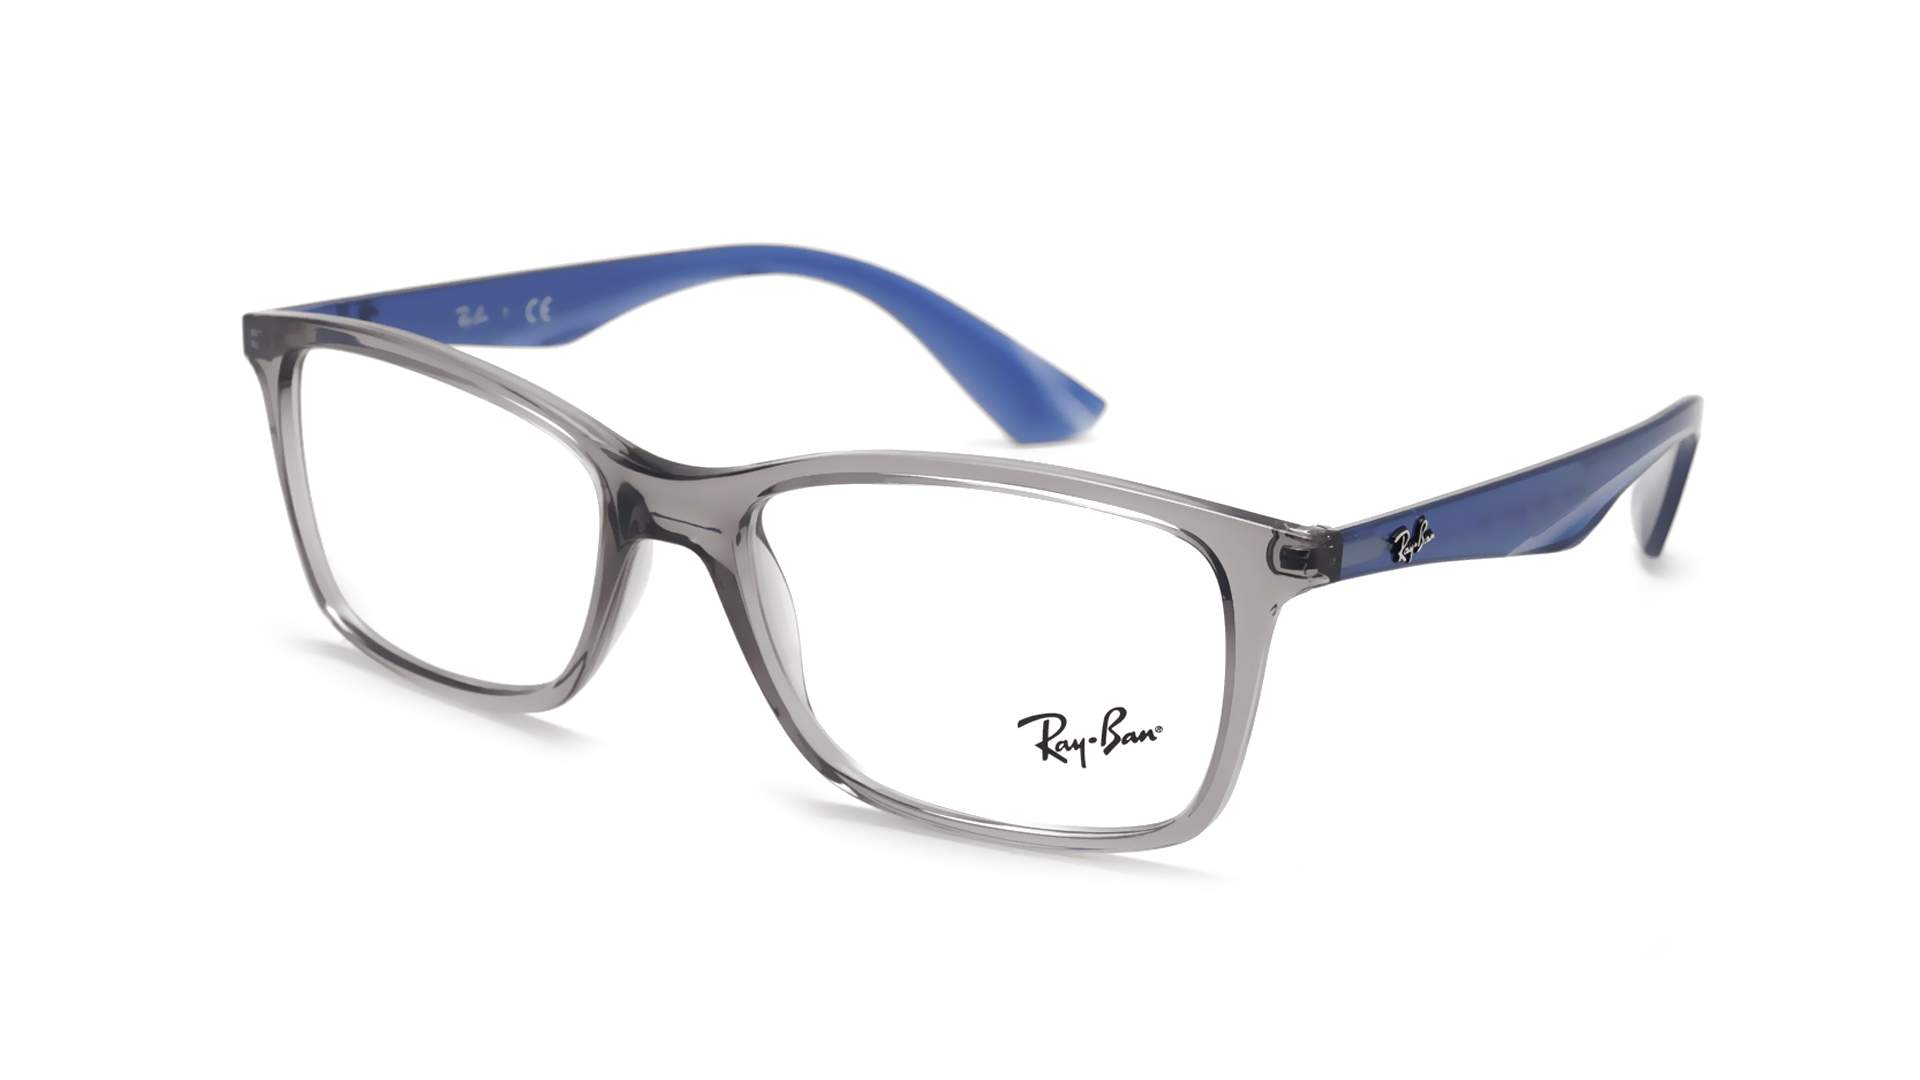 5d940e85dc Eyeglasses Ray-Ban Active Lifestyle Grey RX7047 RB7047 5769 54-17 Medium